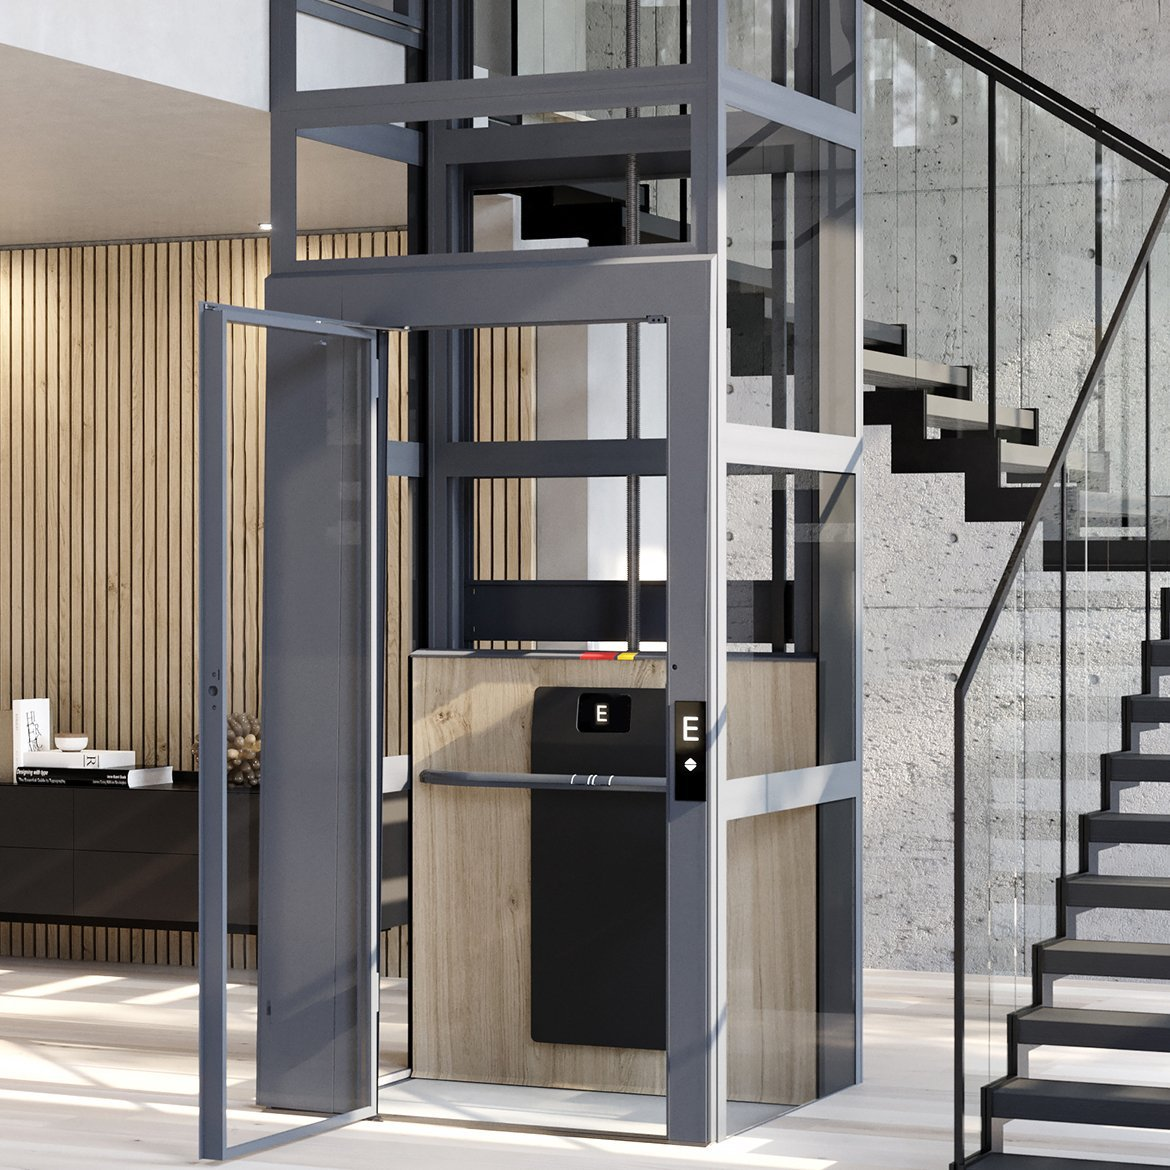 Lift modernisation by Cibes